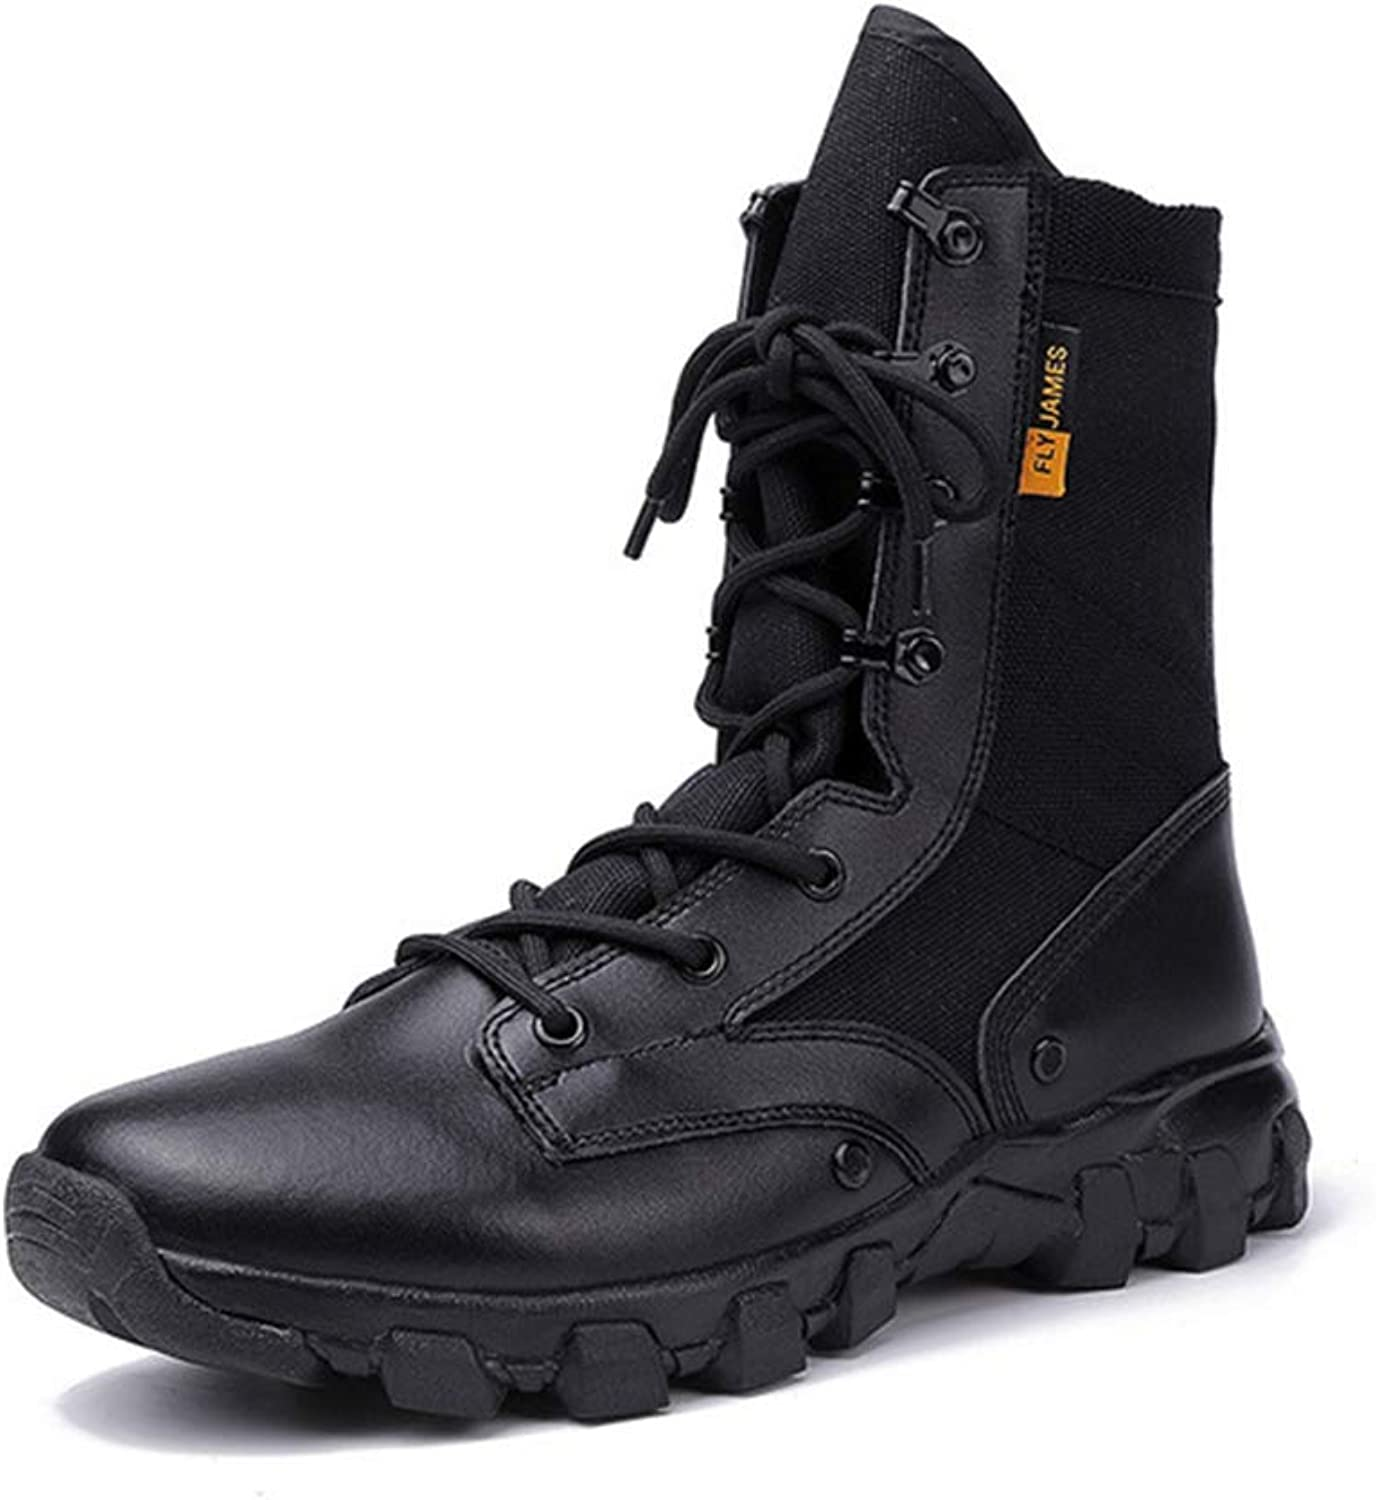 K-Flame Men's Desert Boots Military Combat Boot Jungle Tactical Boots Climbing shoes Hiking Outdoor Breathable Special shoes Non-slip for Cadet Security Patrol